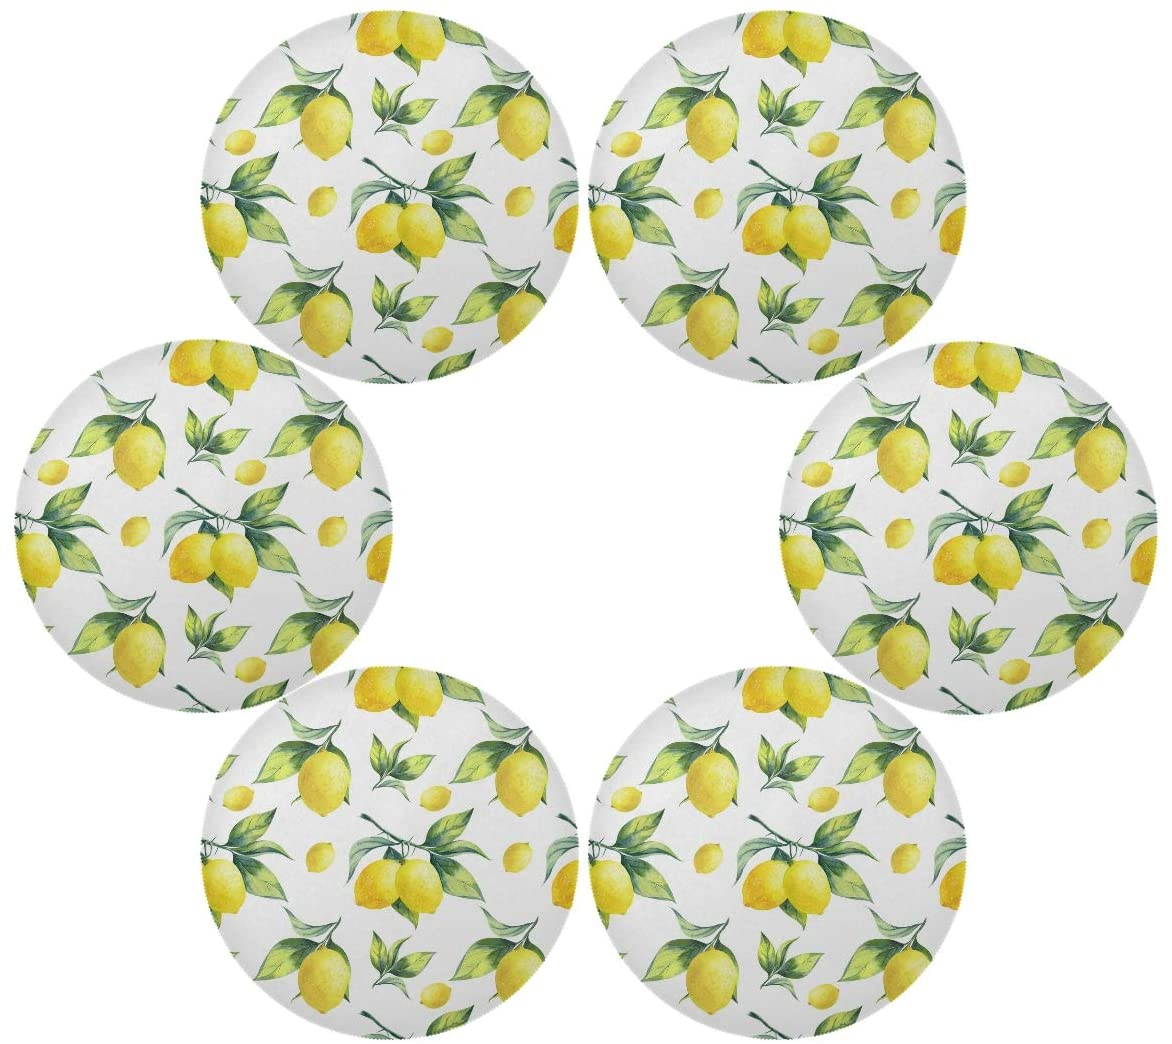 UMIRIKO Lemon Round Placemats Set of 6 Fruit Heat-Resistant Table Mats Non-Slip Place Mats Anti-Skid Washable for Dining Table 2020012